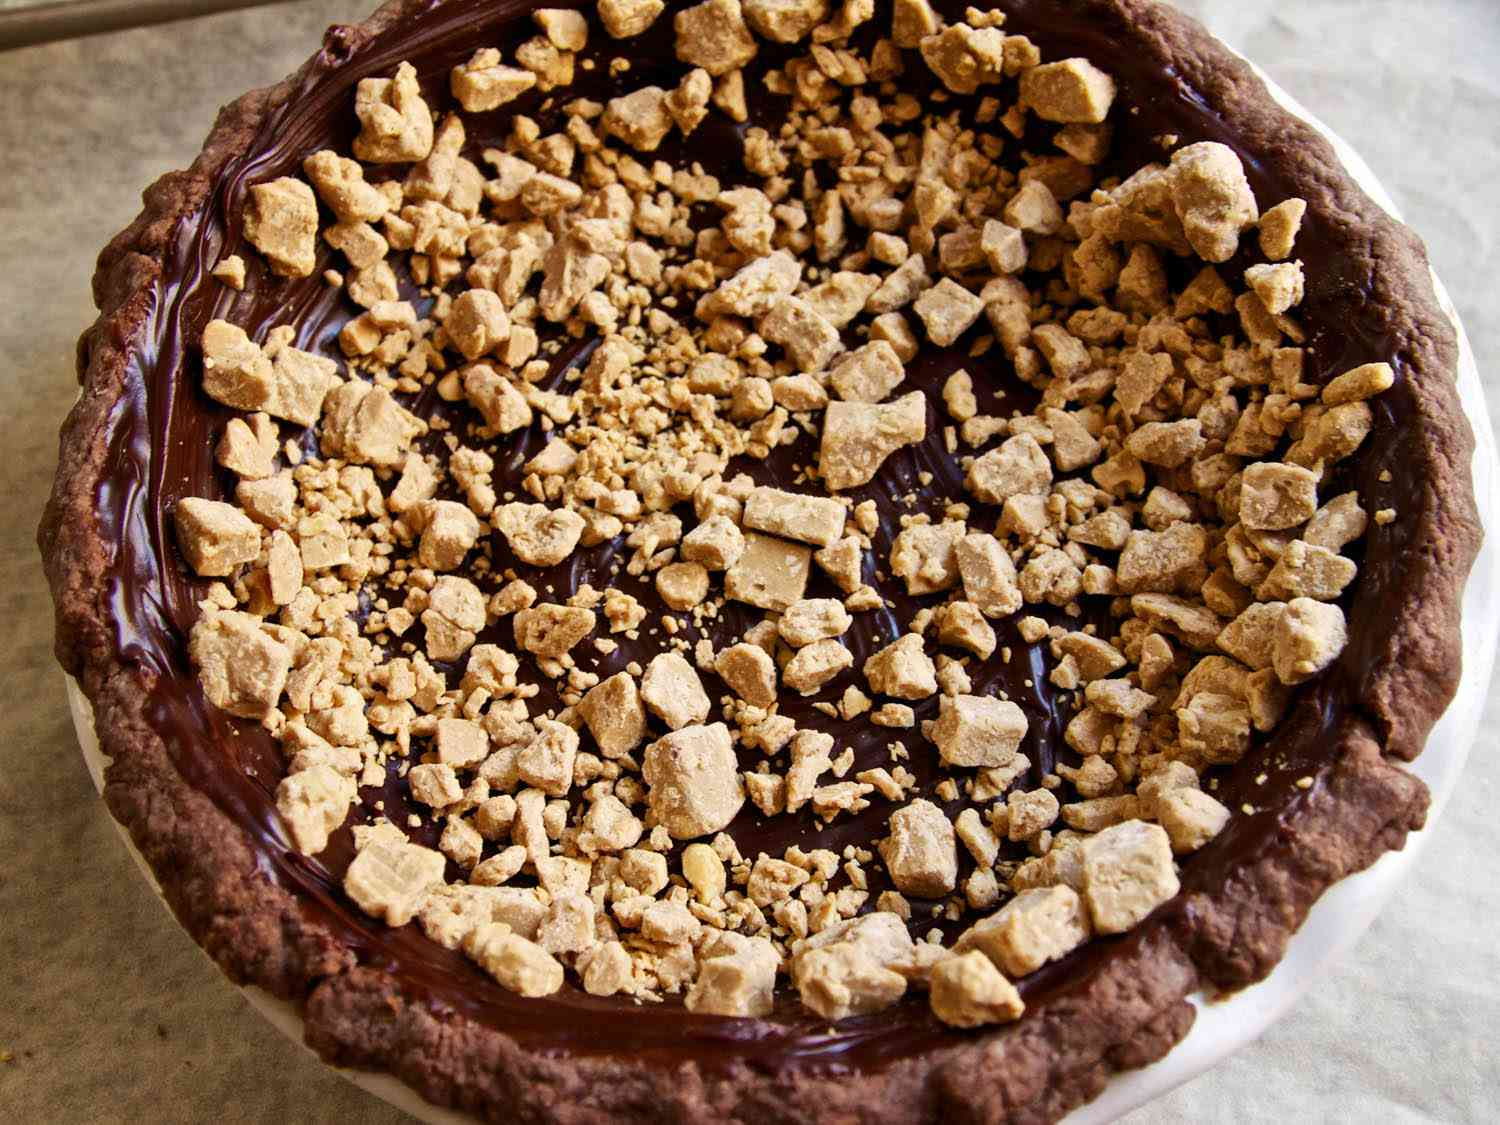 20140909-ideas-in-food-Adding-White-Chocolate-Peanut-Butter-To-Pie.jpg